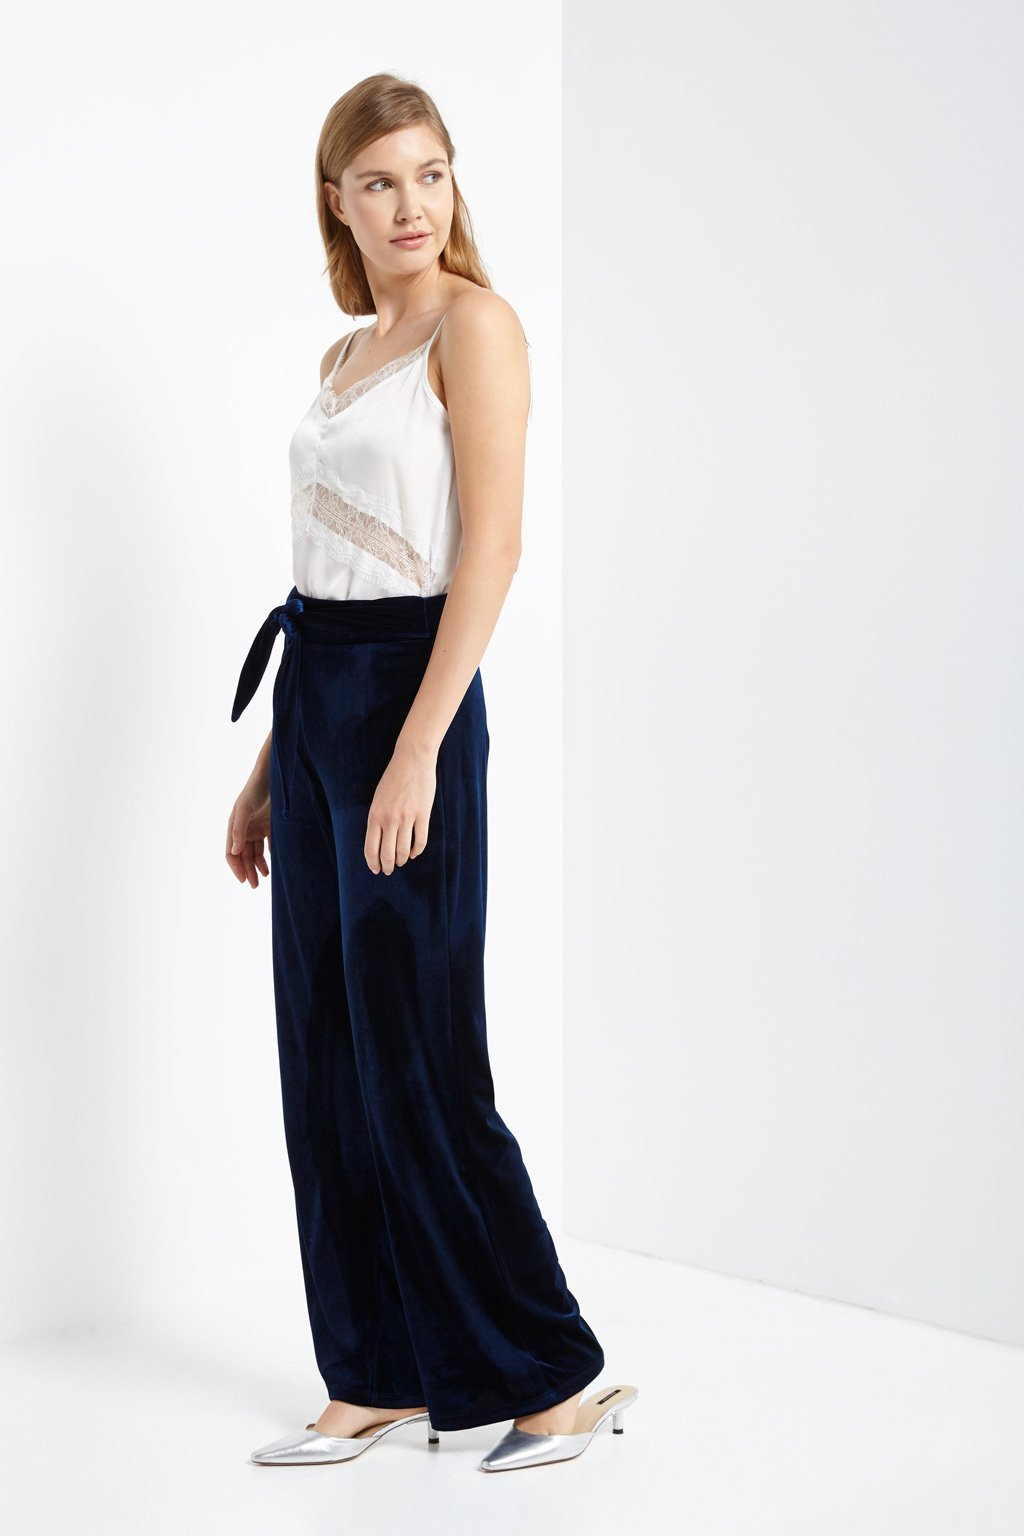 Poshsquare Pants Tie Front High Waisted Velvet Pants